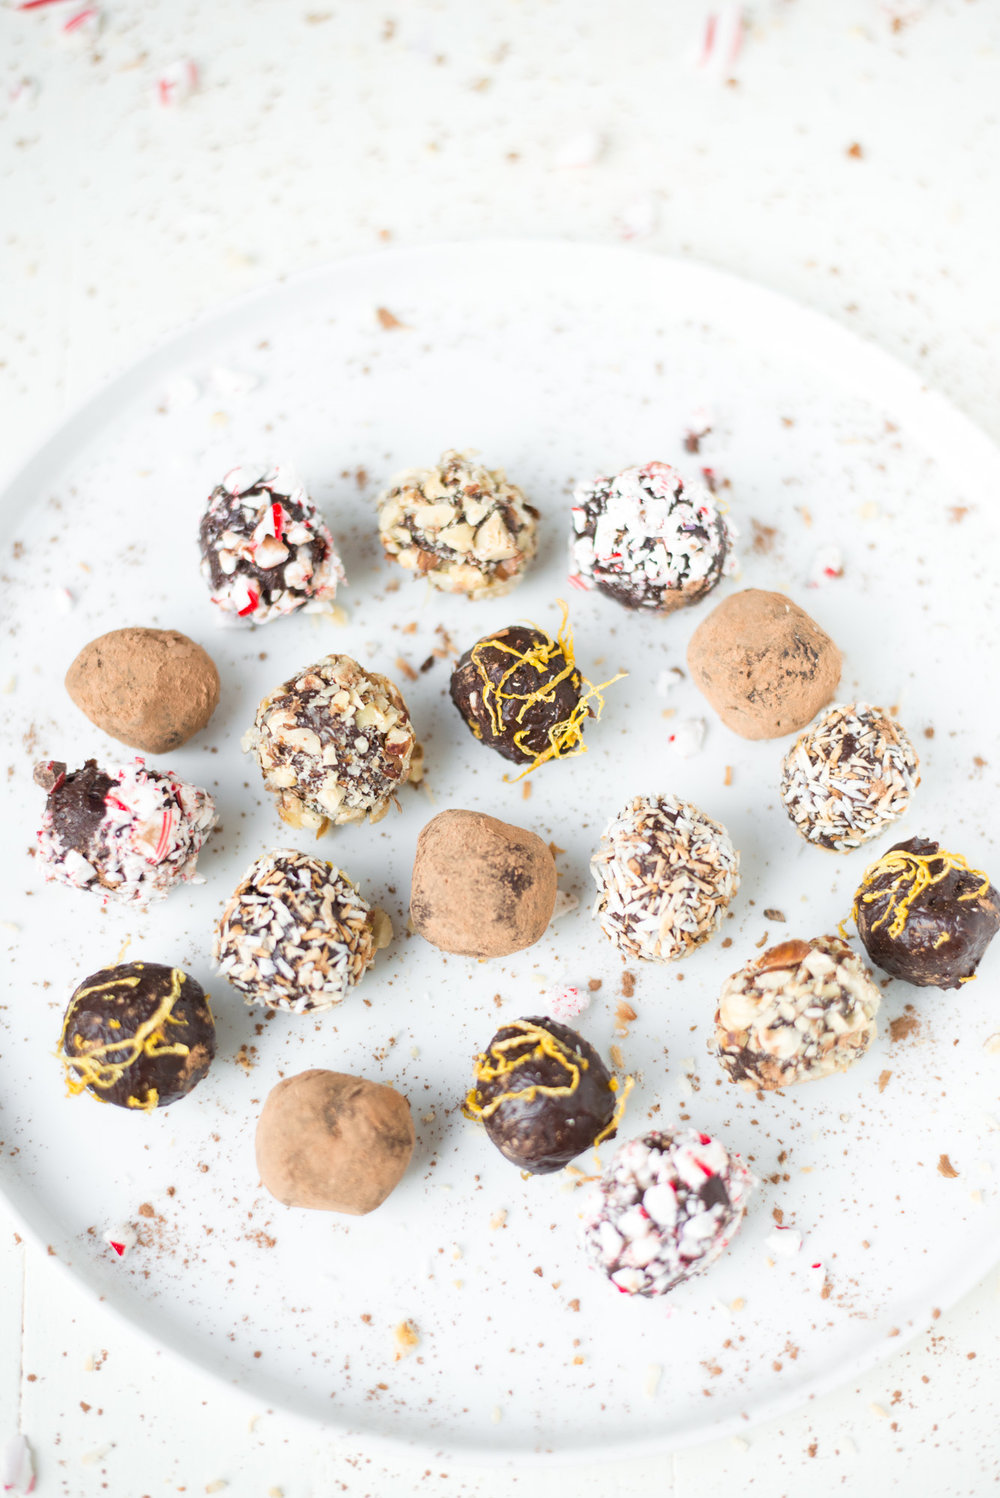 3-Ingredient Chocolate Truffles are simple to make, taste divine, and are dairy-free!